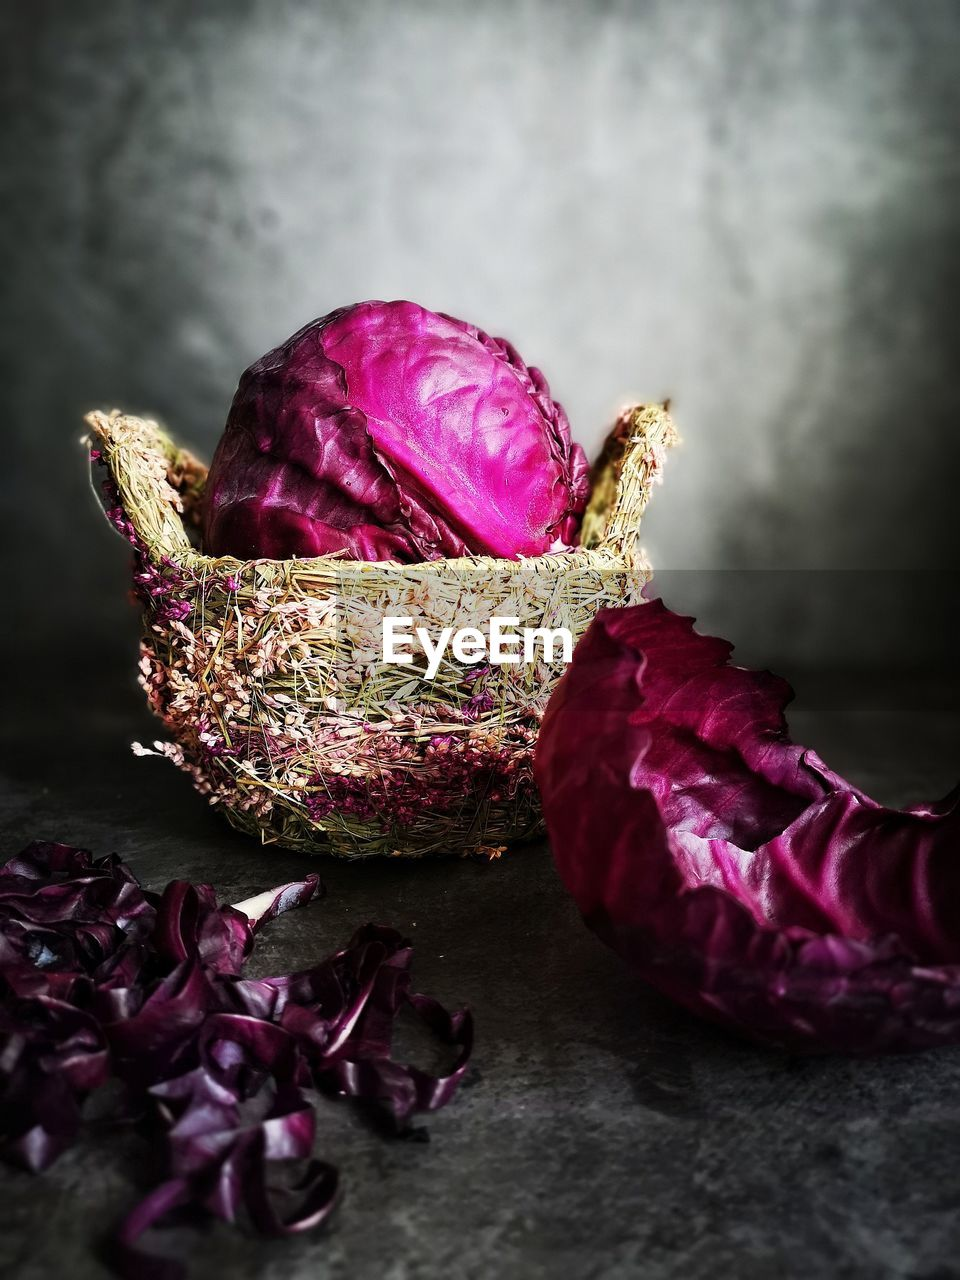 freshness, close-up, food and drink, flower, food, wellbeing, healthy eating, still life, indoors, purple, flowering plant, no people, vegetable, beauty in nature, plant, petal, focus on foreground, nature, pink color, table, flower head, wilted plant, maroon